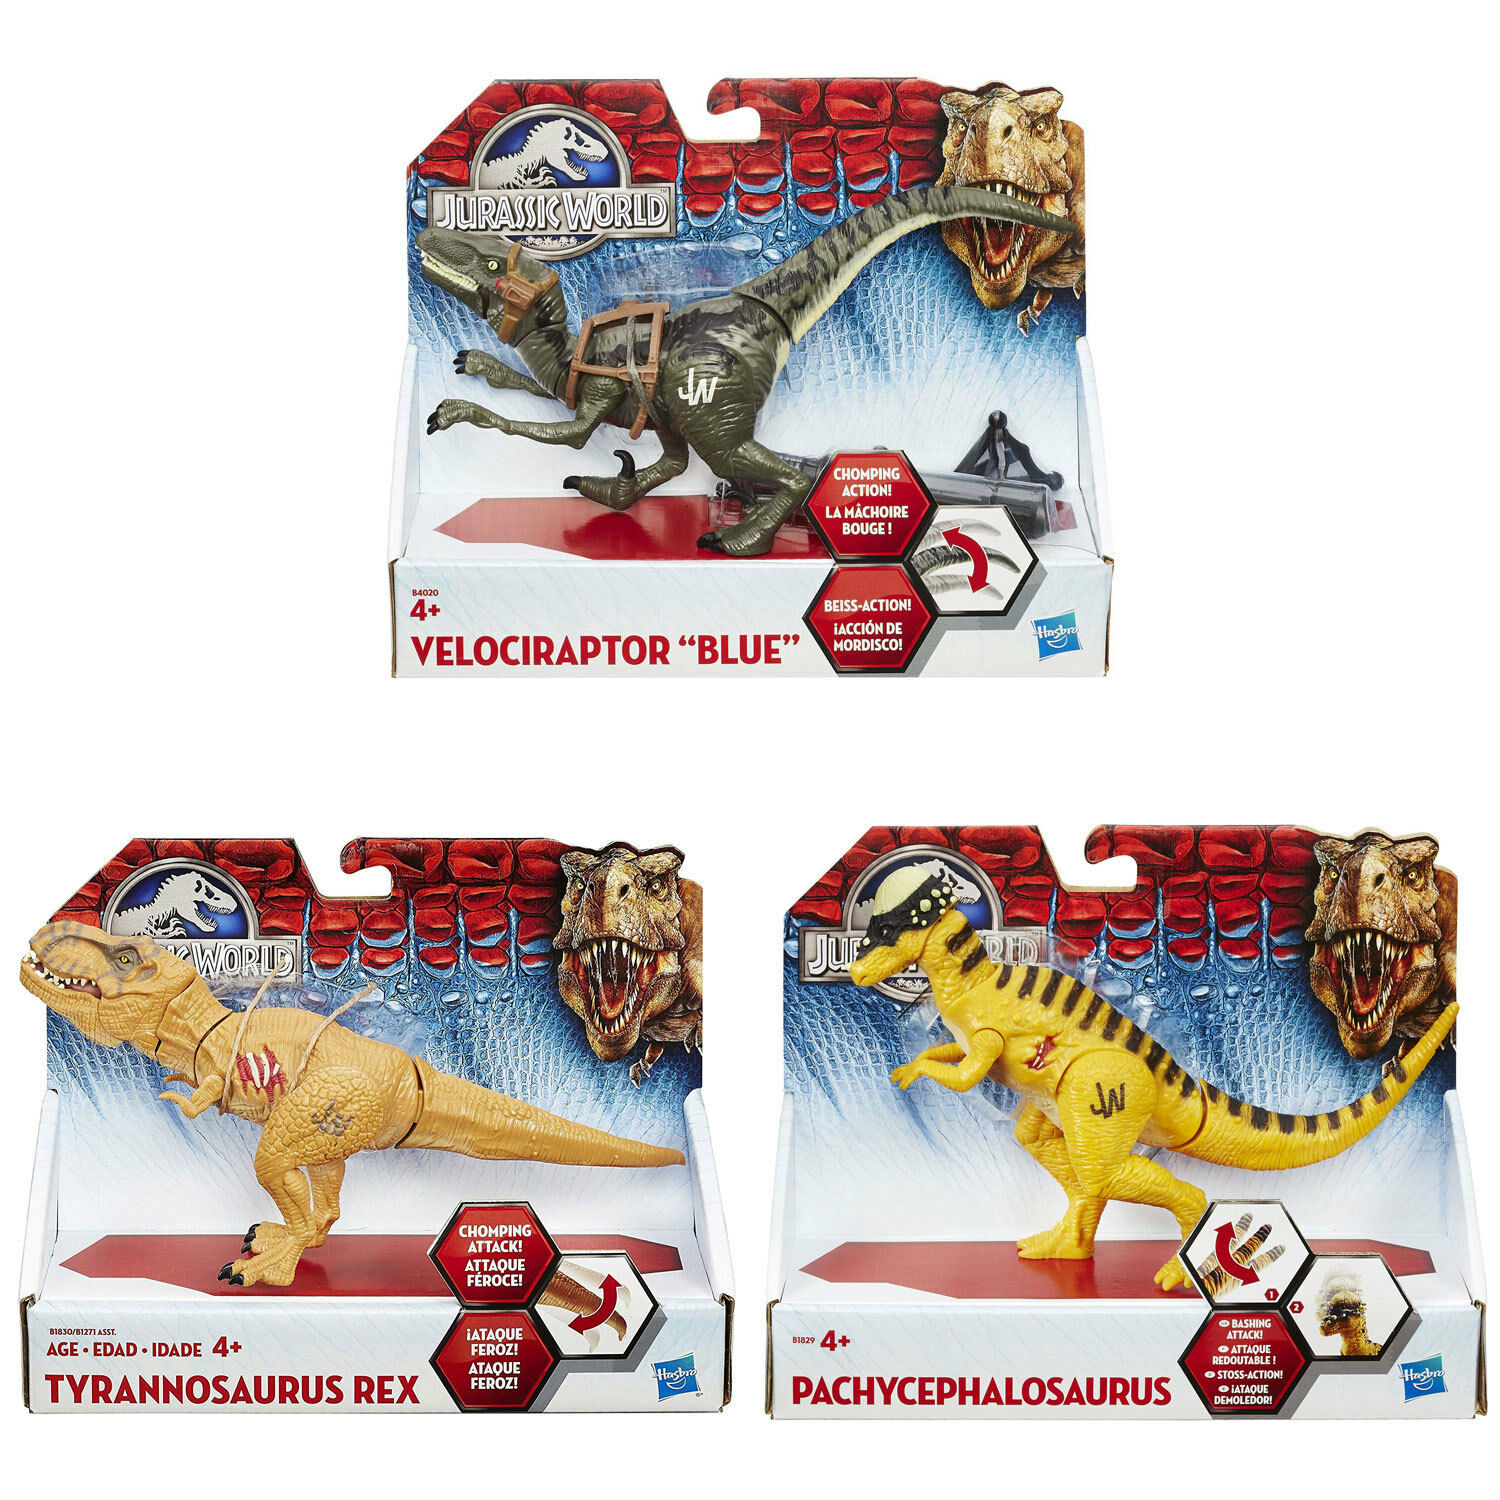 Jurassic World Bashers and Biters SET OF 3 (Velociraptor  bluee , T-Rex, Pachy)